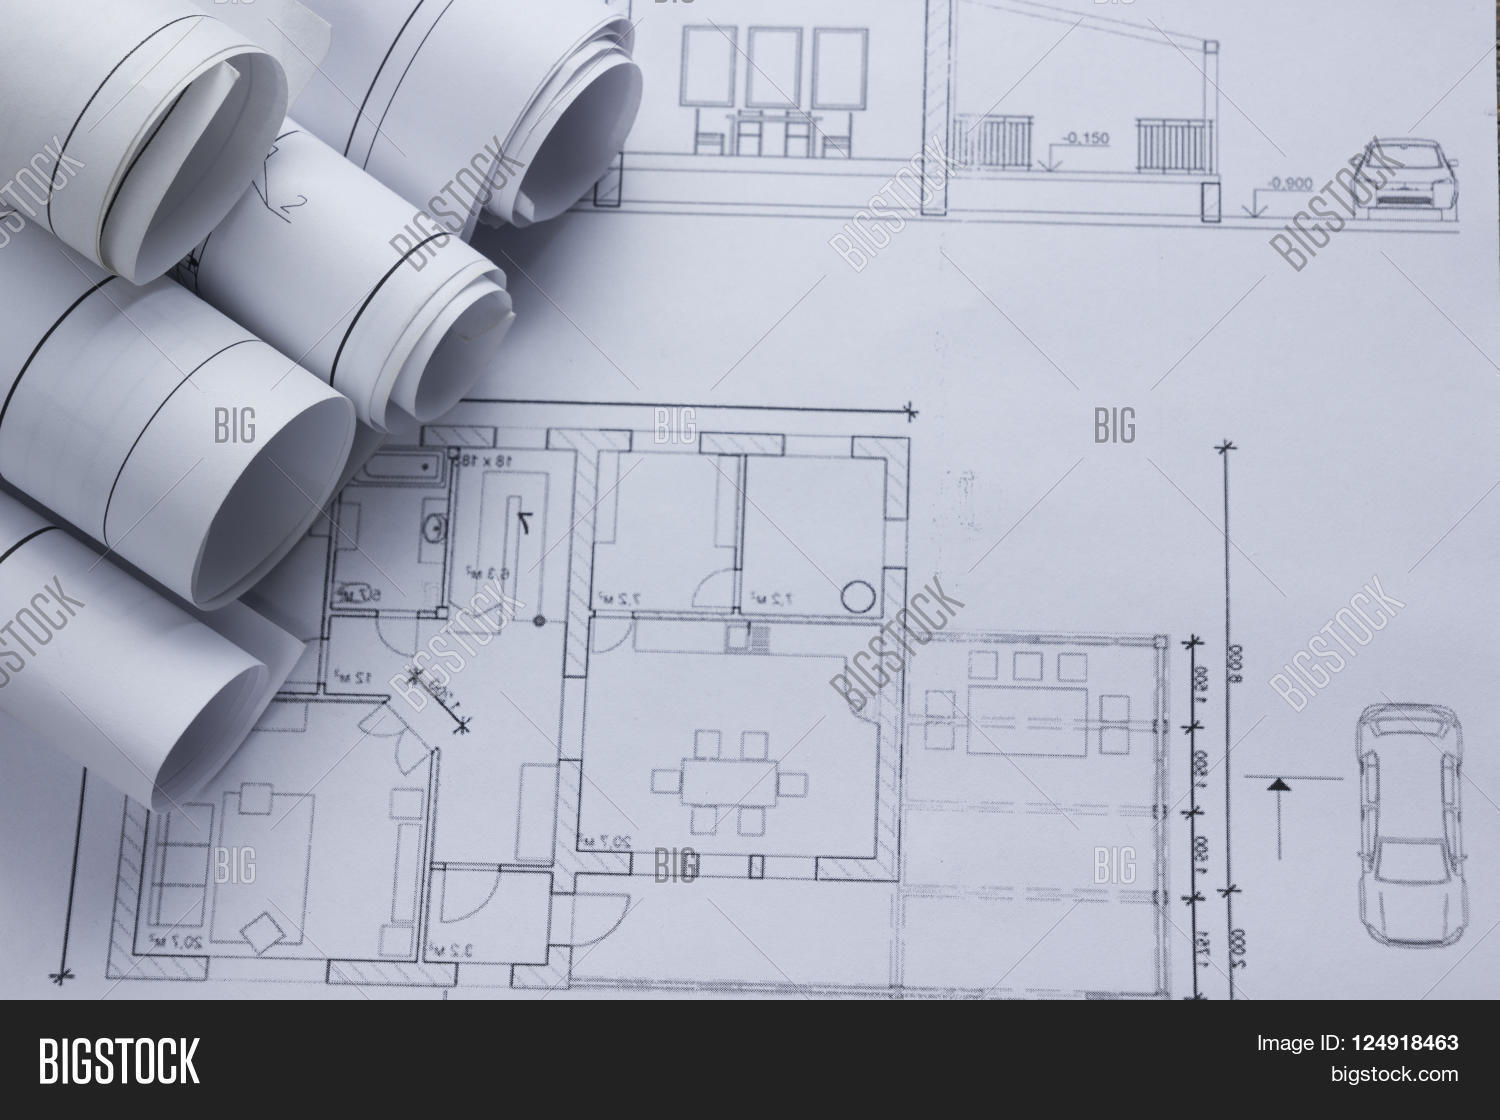 Architect worplace top view image photo bigstock for Architecture design blueprint